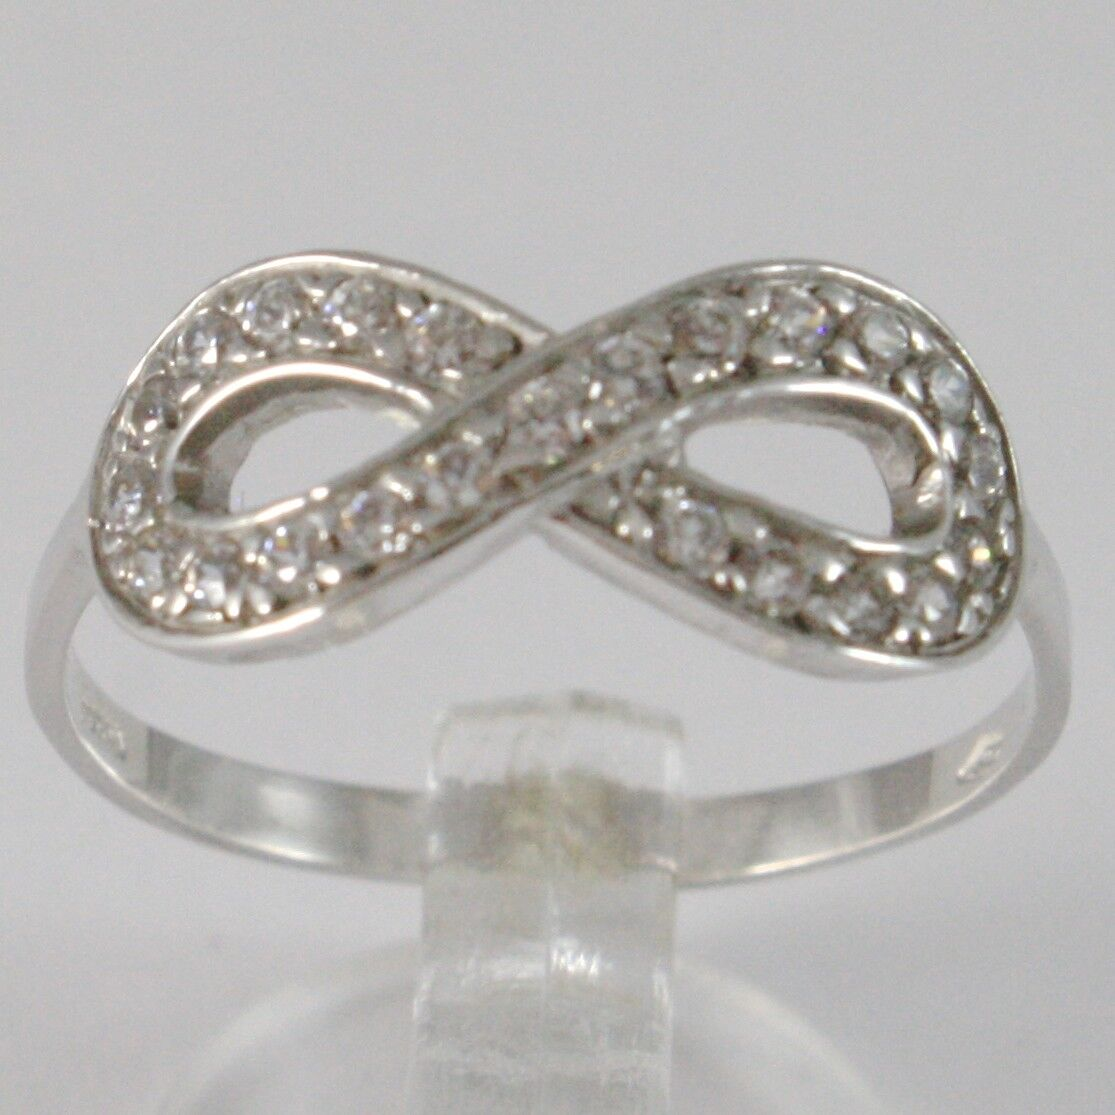 BAGUE EN OR white 750 18K, SYMBOLE INFINI AVEC ZIRCON, MADE IN ITALY